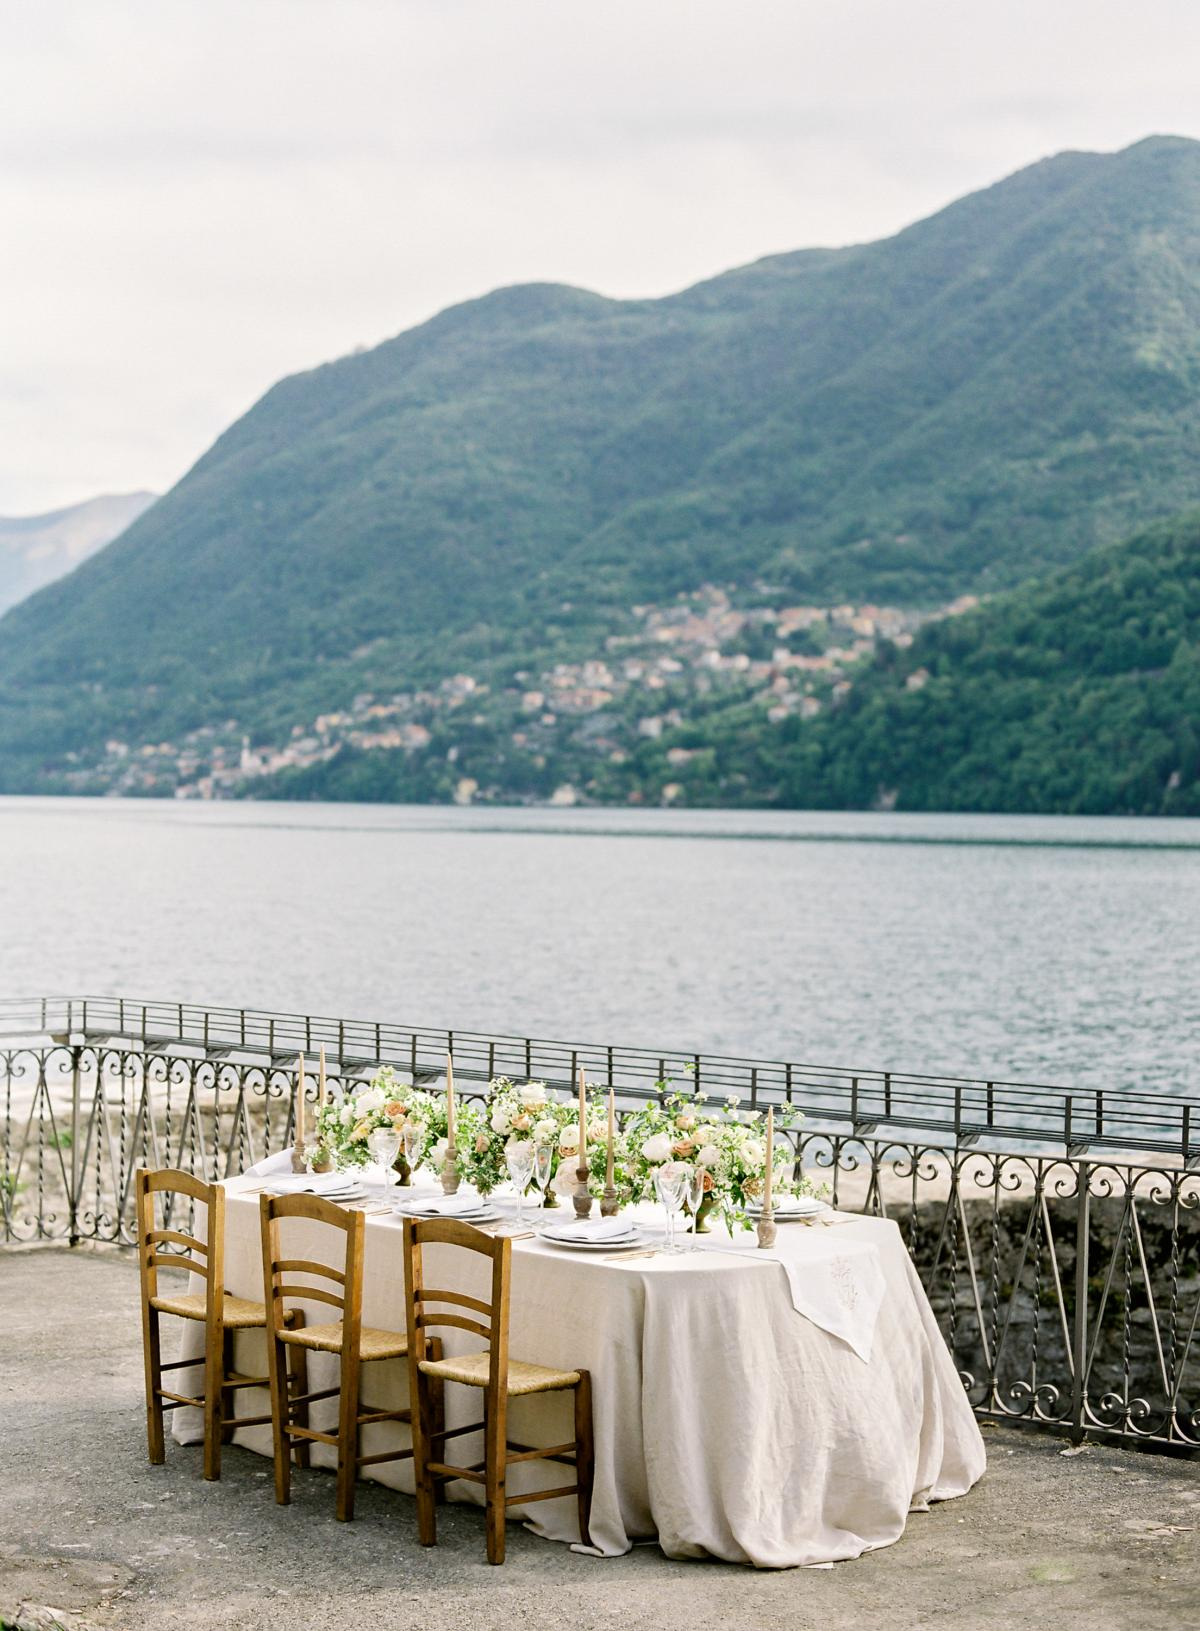 Lake Como Villa Del Balbianello Wedding Omalley Photographers 0017